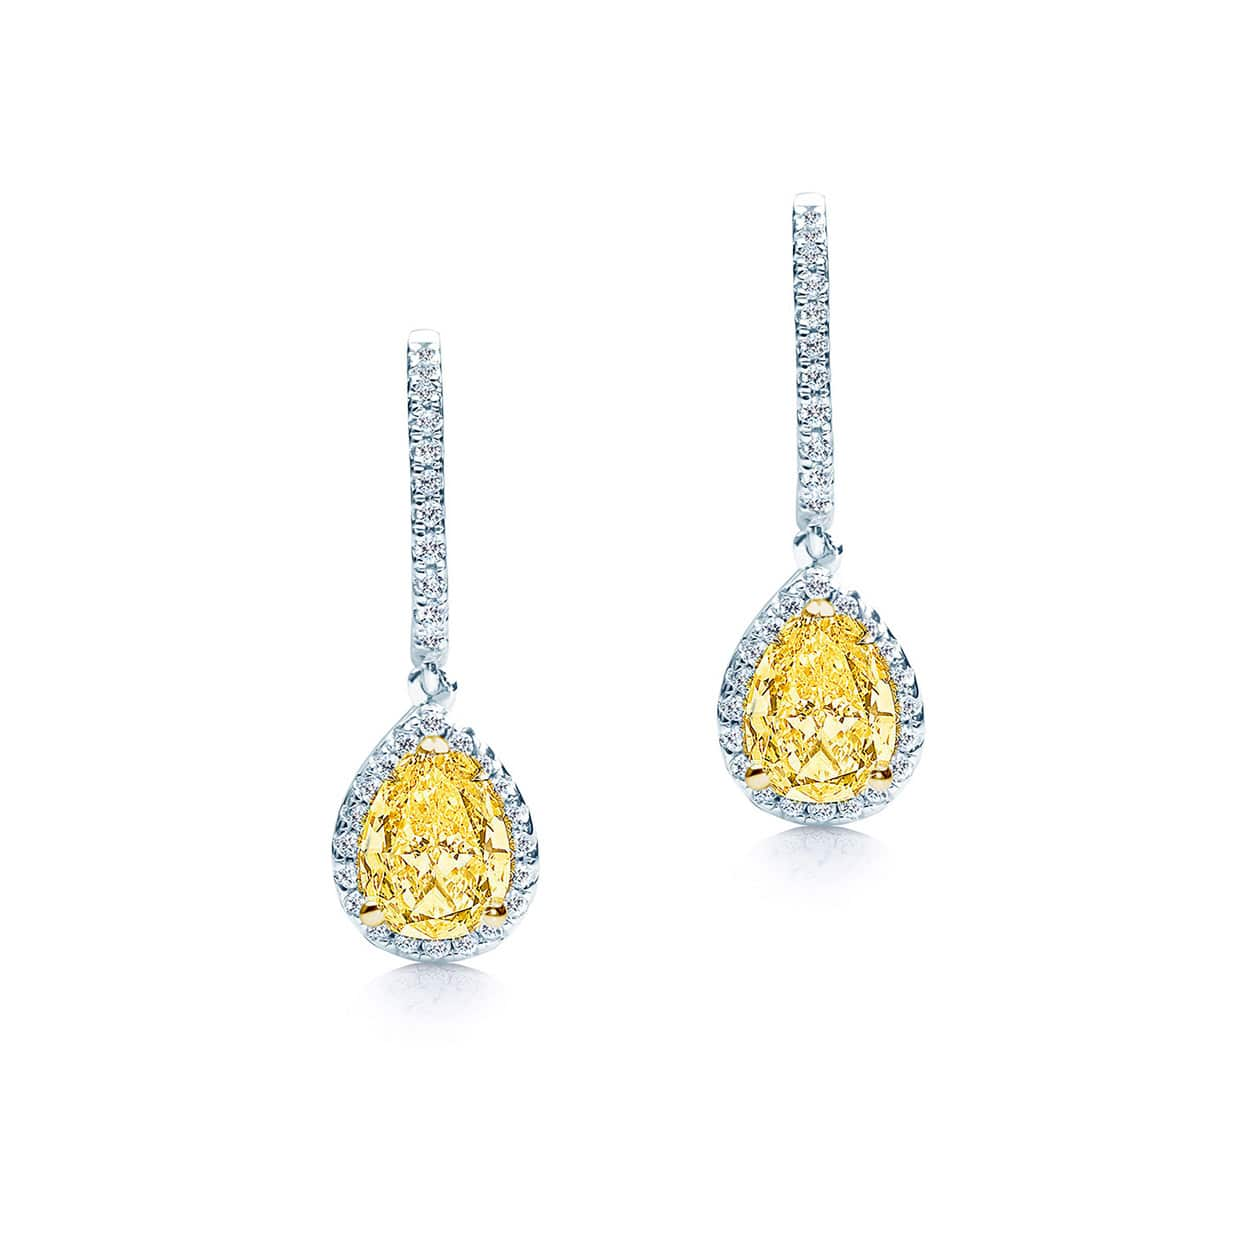 Oxford Long Yellow Pear Drop Earrings - Abelstedt